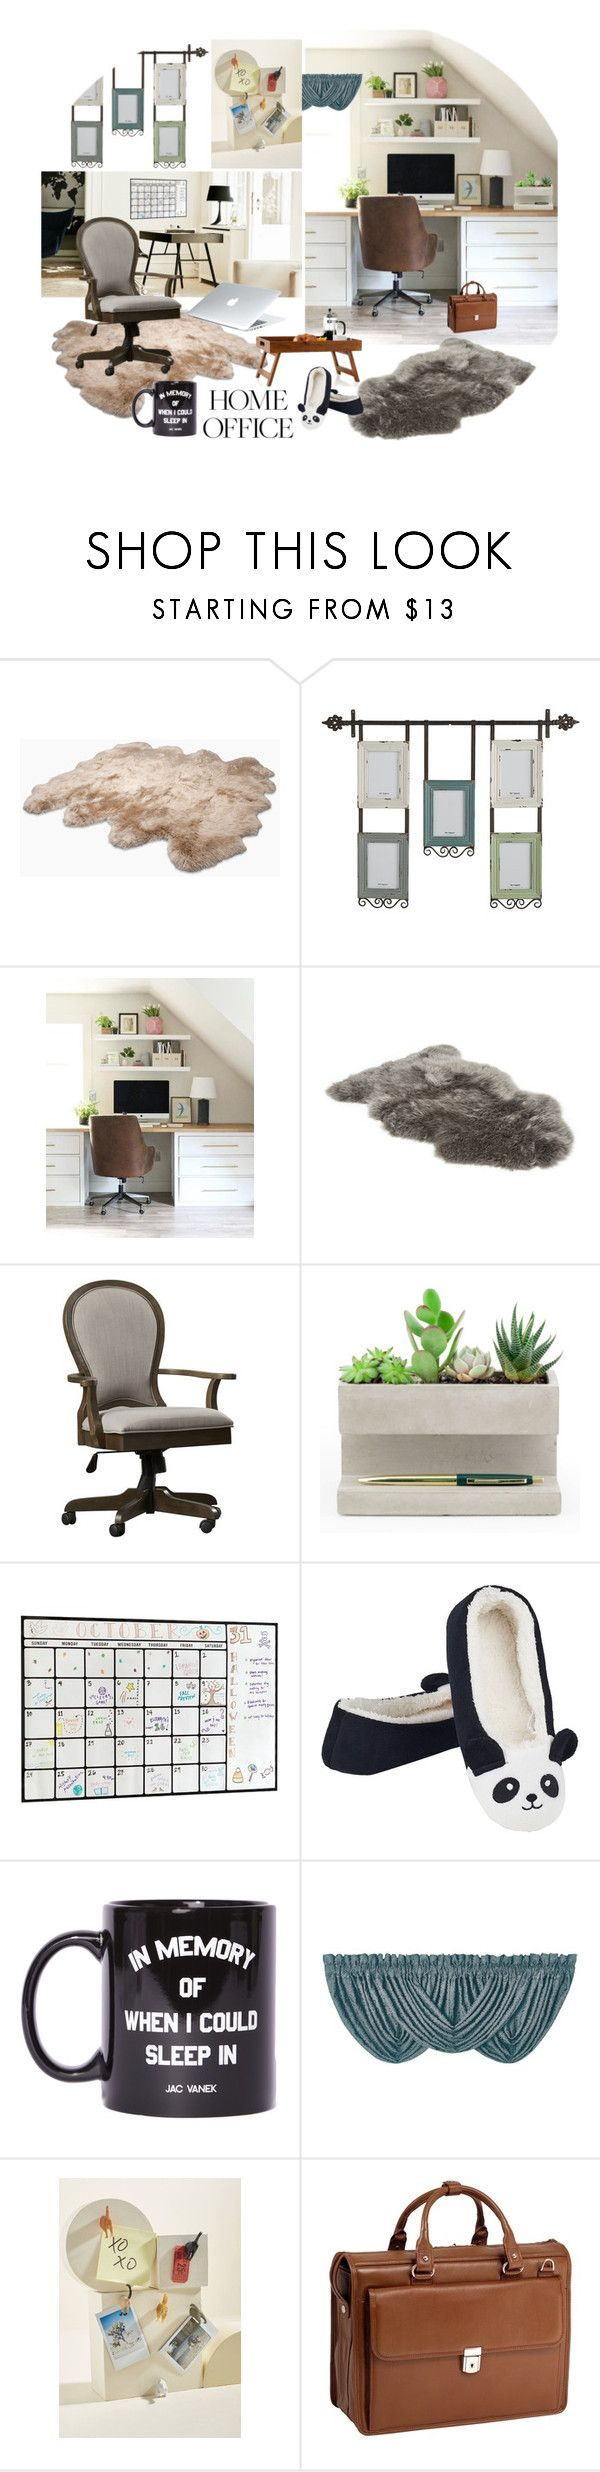 """""""Tough Day at the Office"""" by sojazzed ❤ liked on Polyvore featuring interior, interiors, interior design, home, home decor, interior decorating, UGG Australia, Pier 1 Imports, West Elm and UGG"""